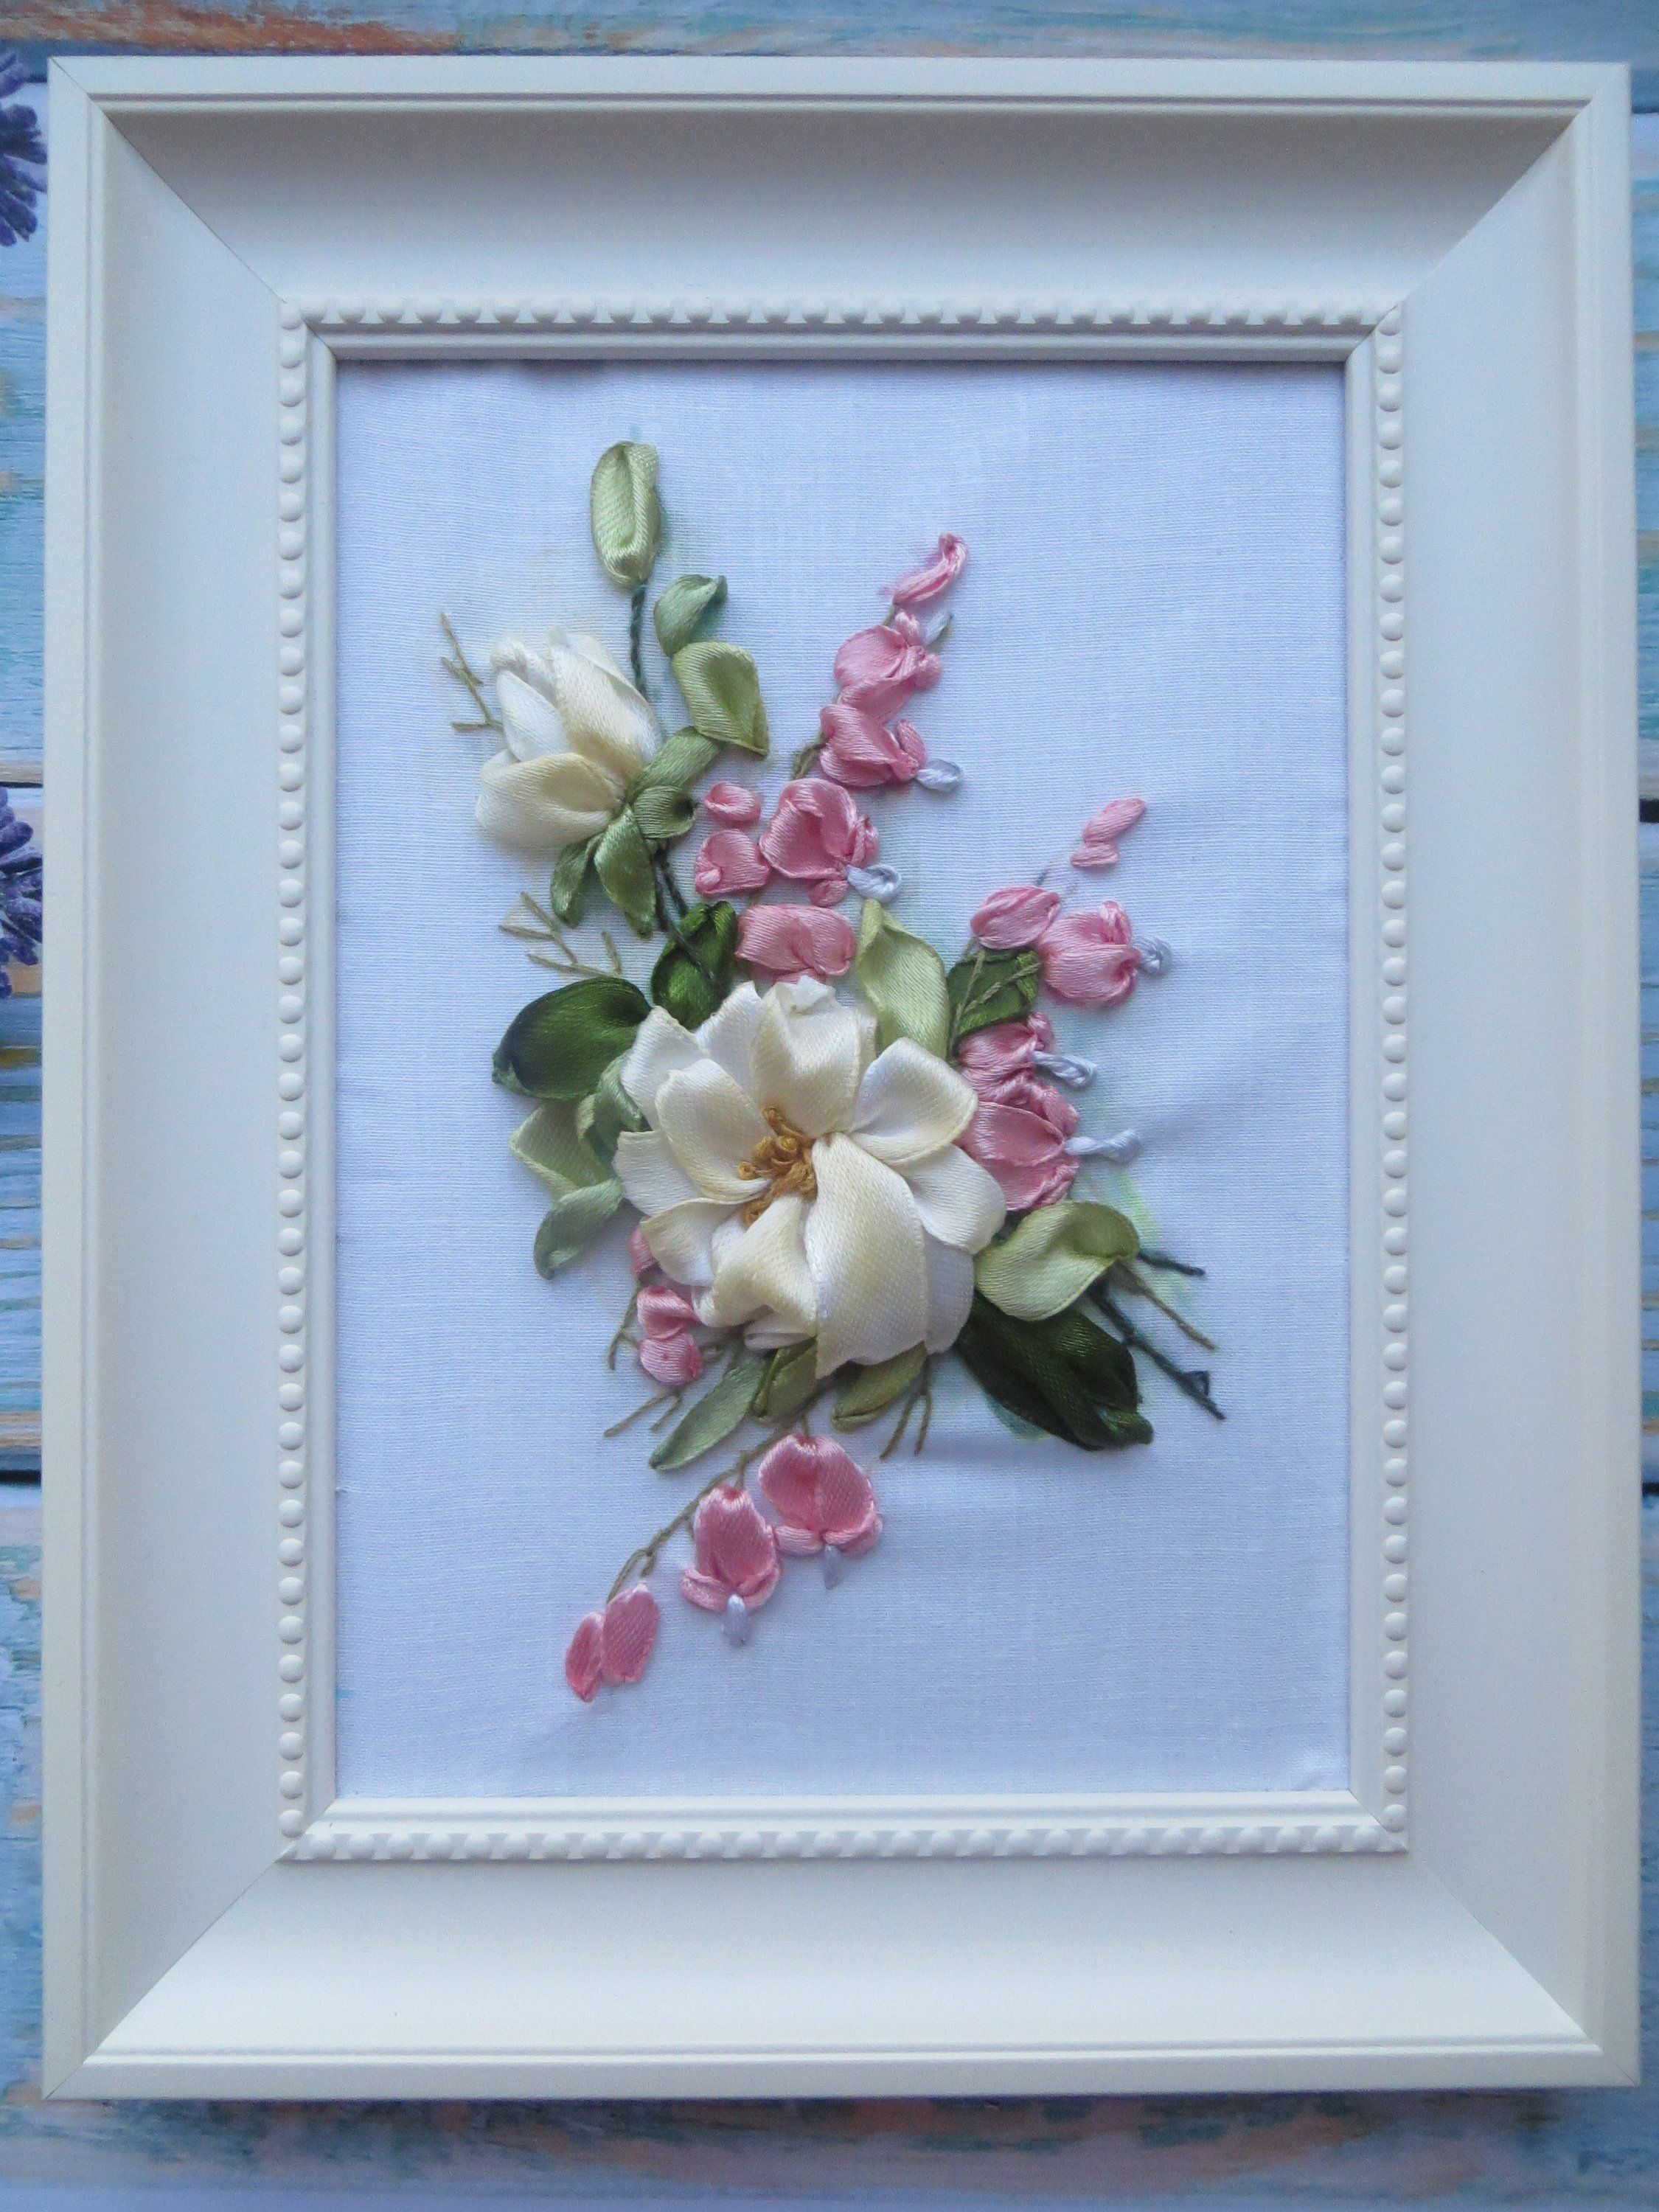 Pin By Gloria Leon On Manualidades Embroidery Art Silk Ribbon Embroidery Ribbon Embroidery